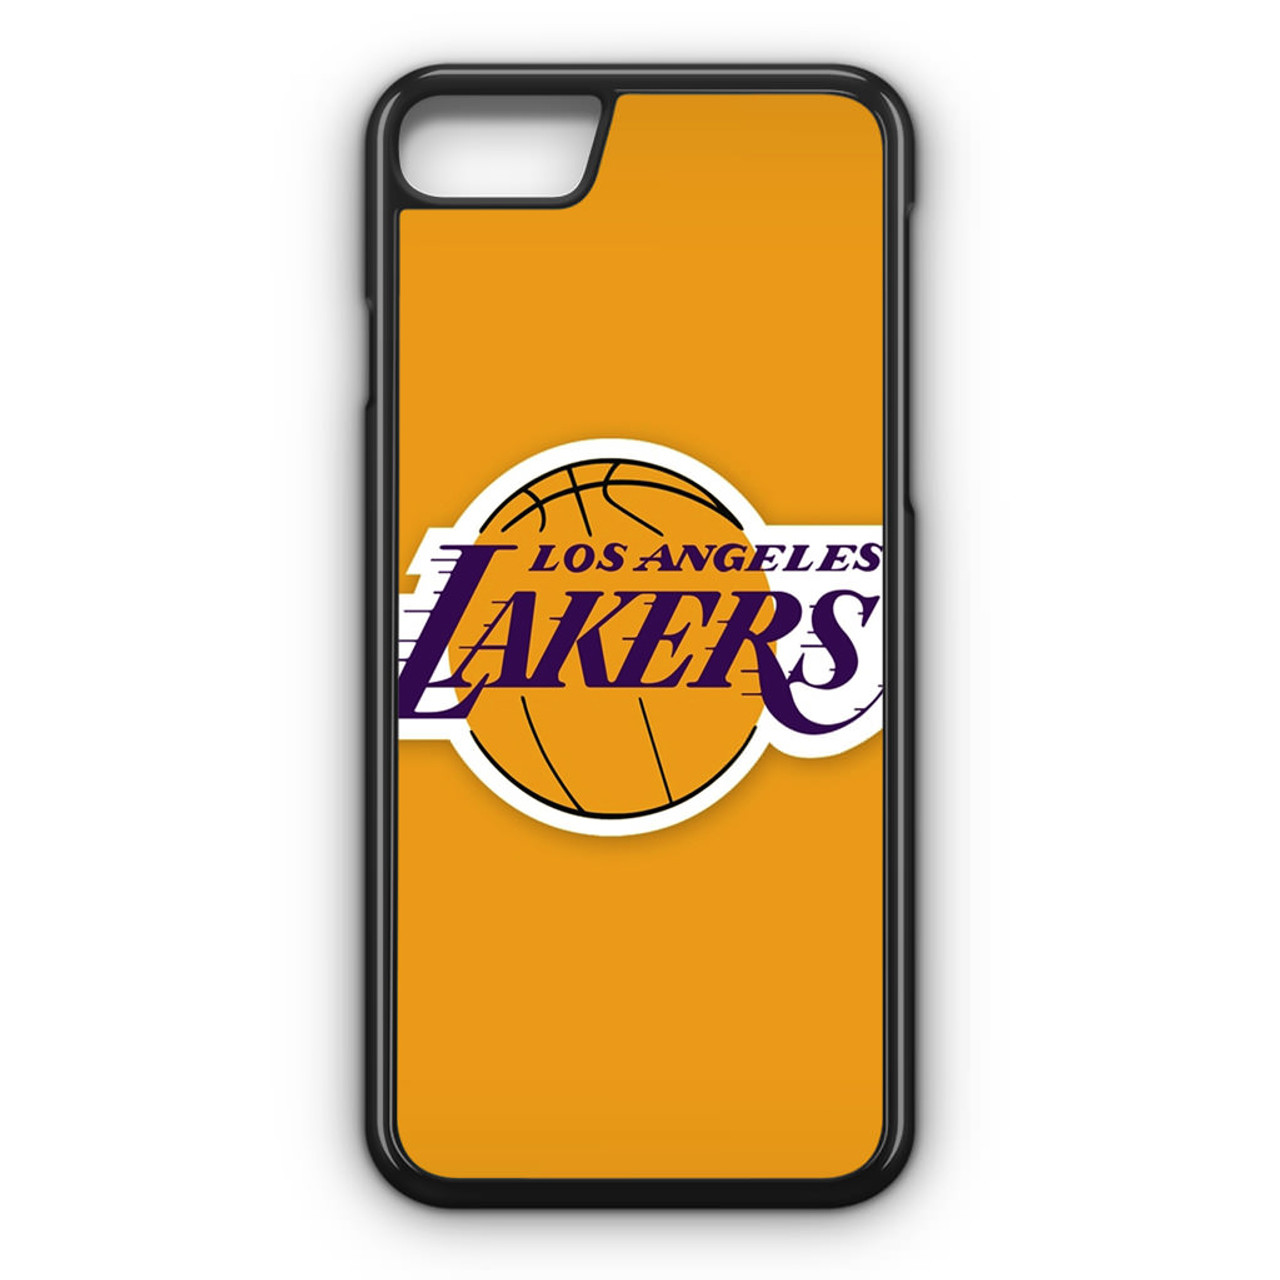 Los angeles lakers logo nba iphone 8 case caseshunter los angeles lakers logo nba iphone 8 case voltagebd Images